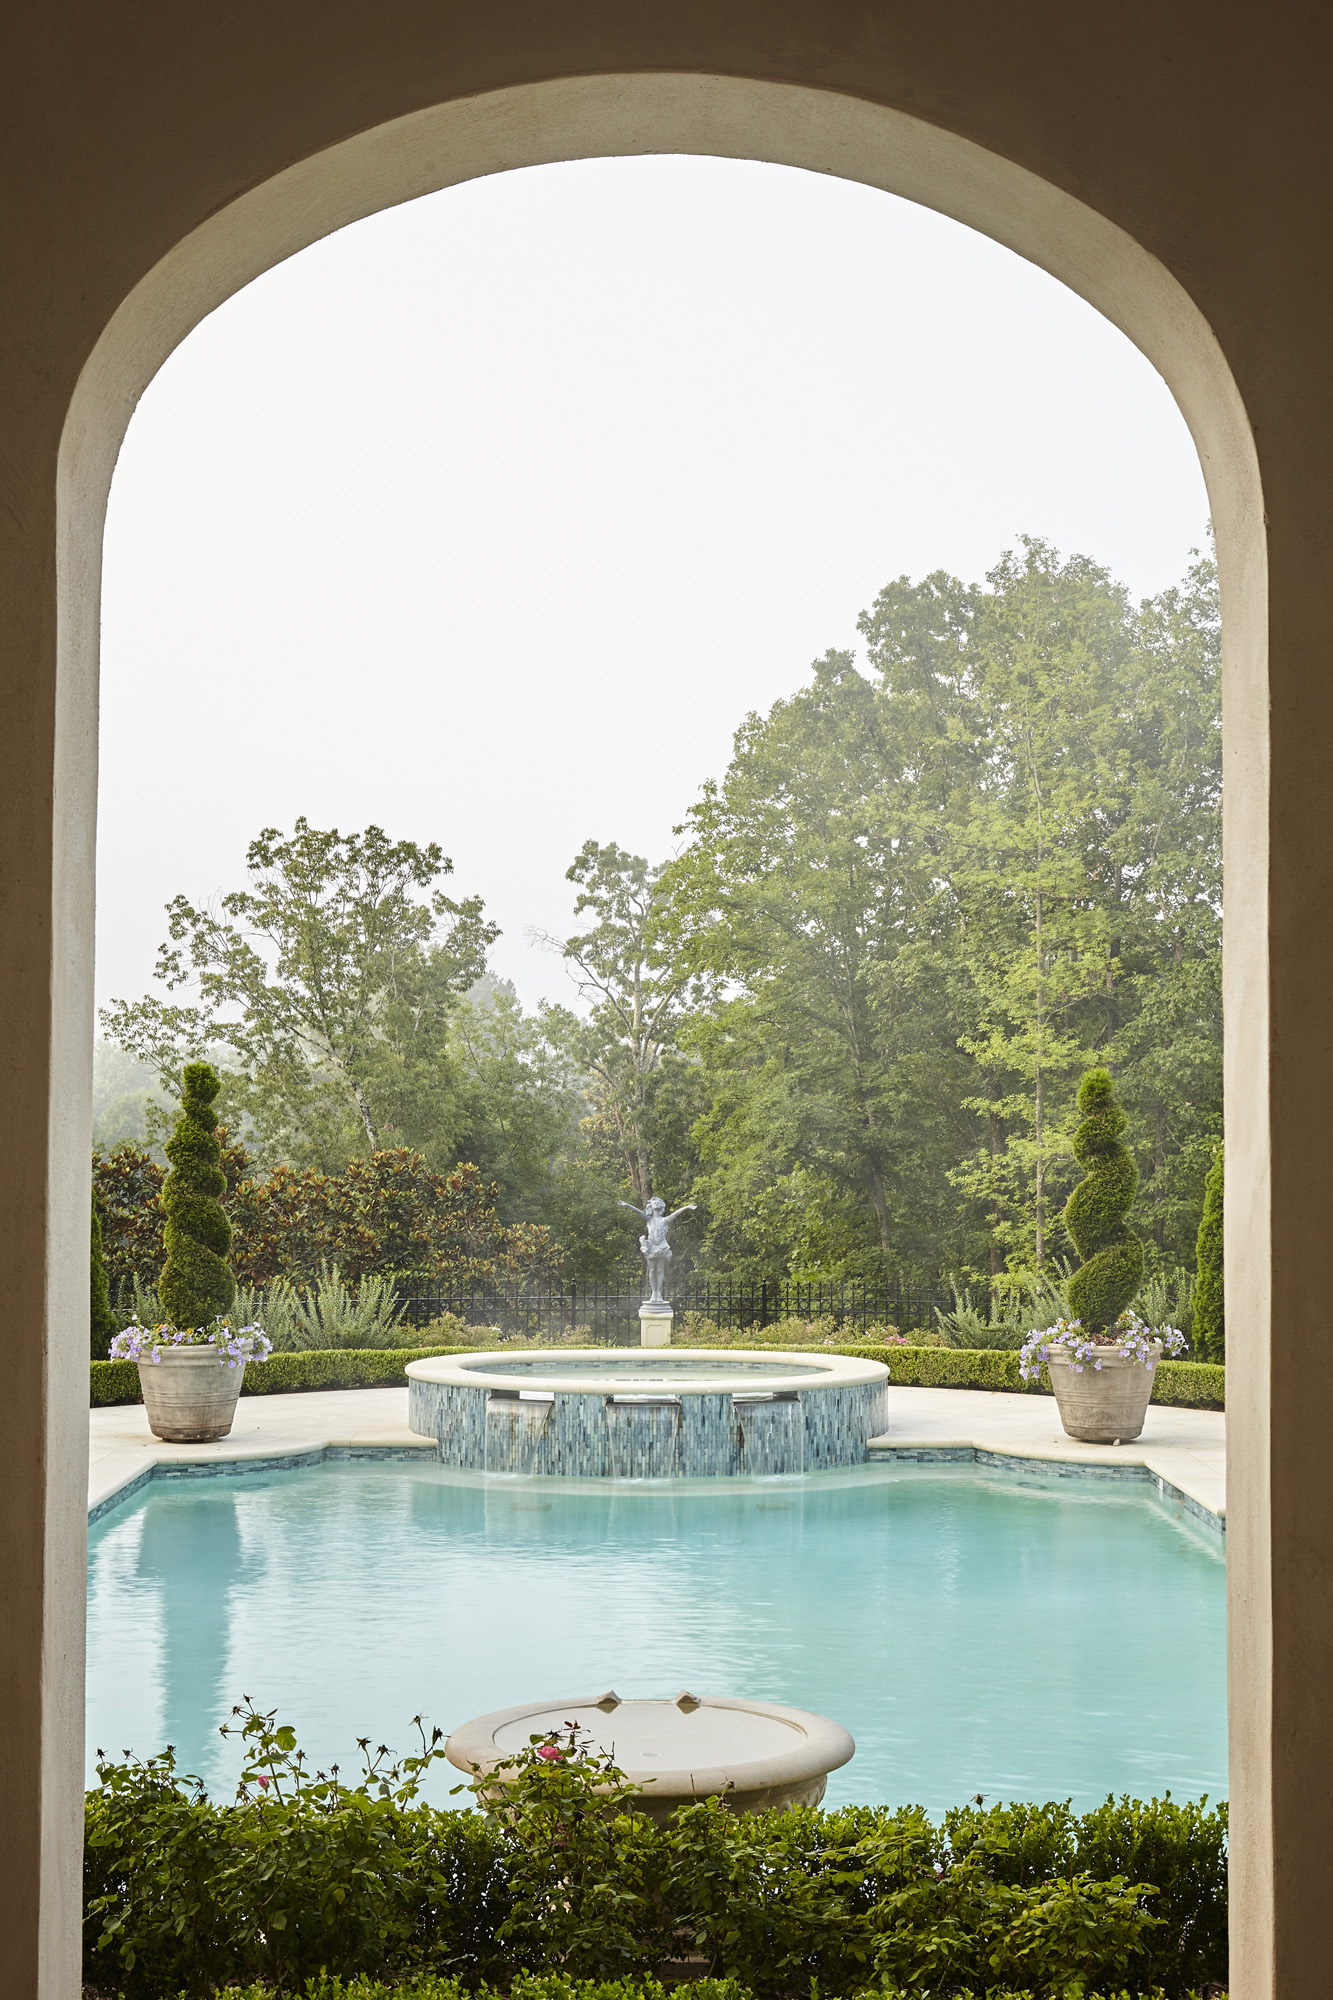 Arched opening on loggia frames pool spa statue and view on axis point a hallmark of European design by Harrison Design